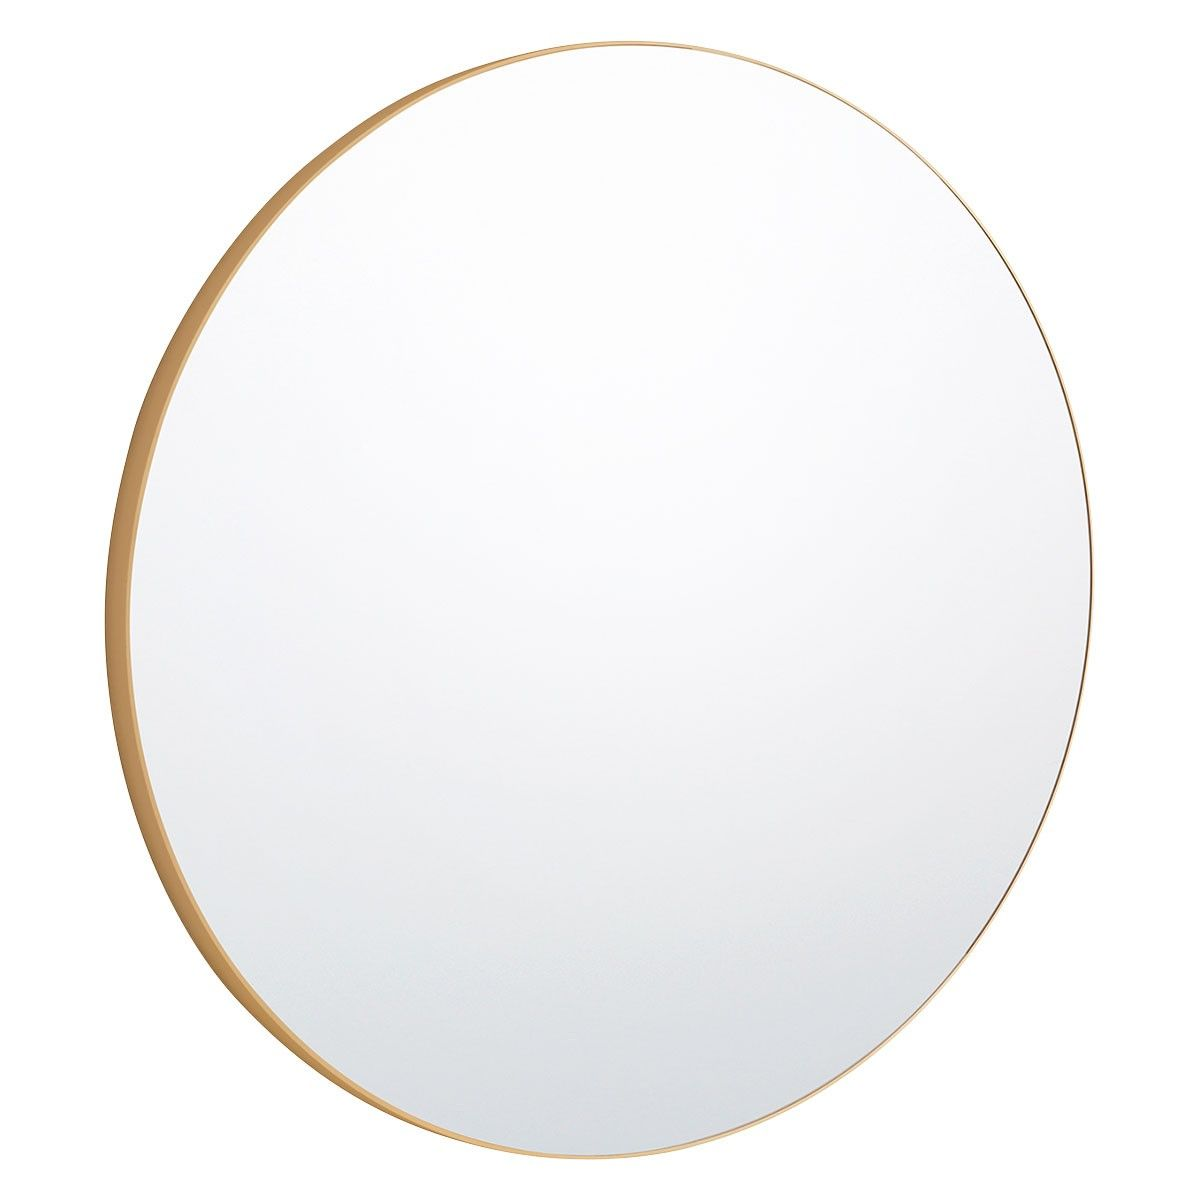 Patsy D110cm Extra Large Round Gold Wall Mirror Gold Mirror Wall Antique Mirror Wall Mirror Wall